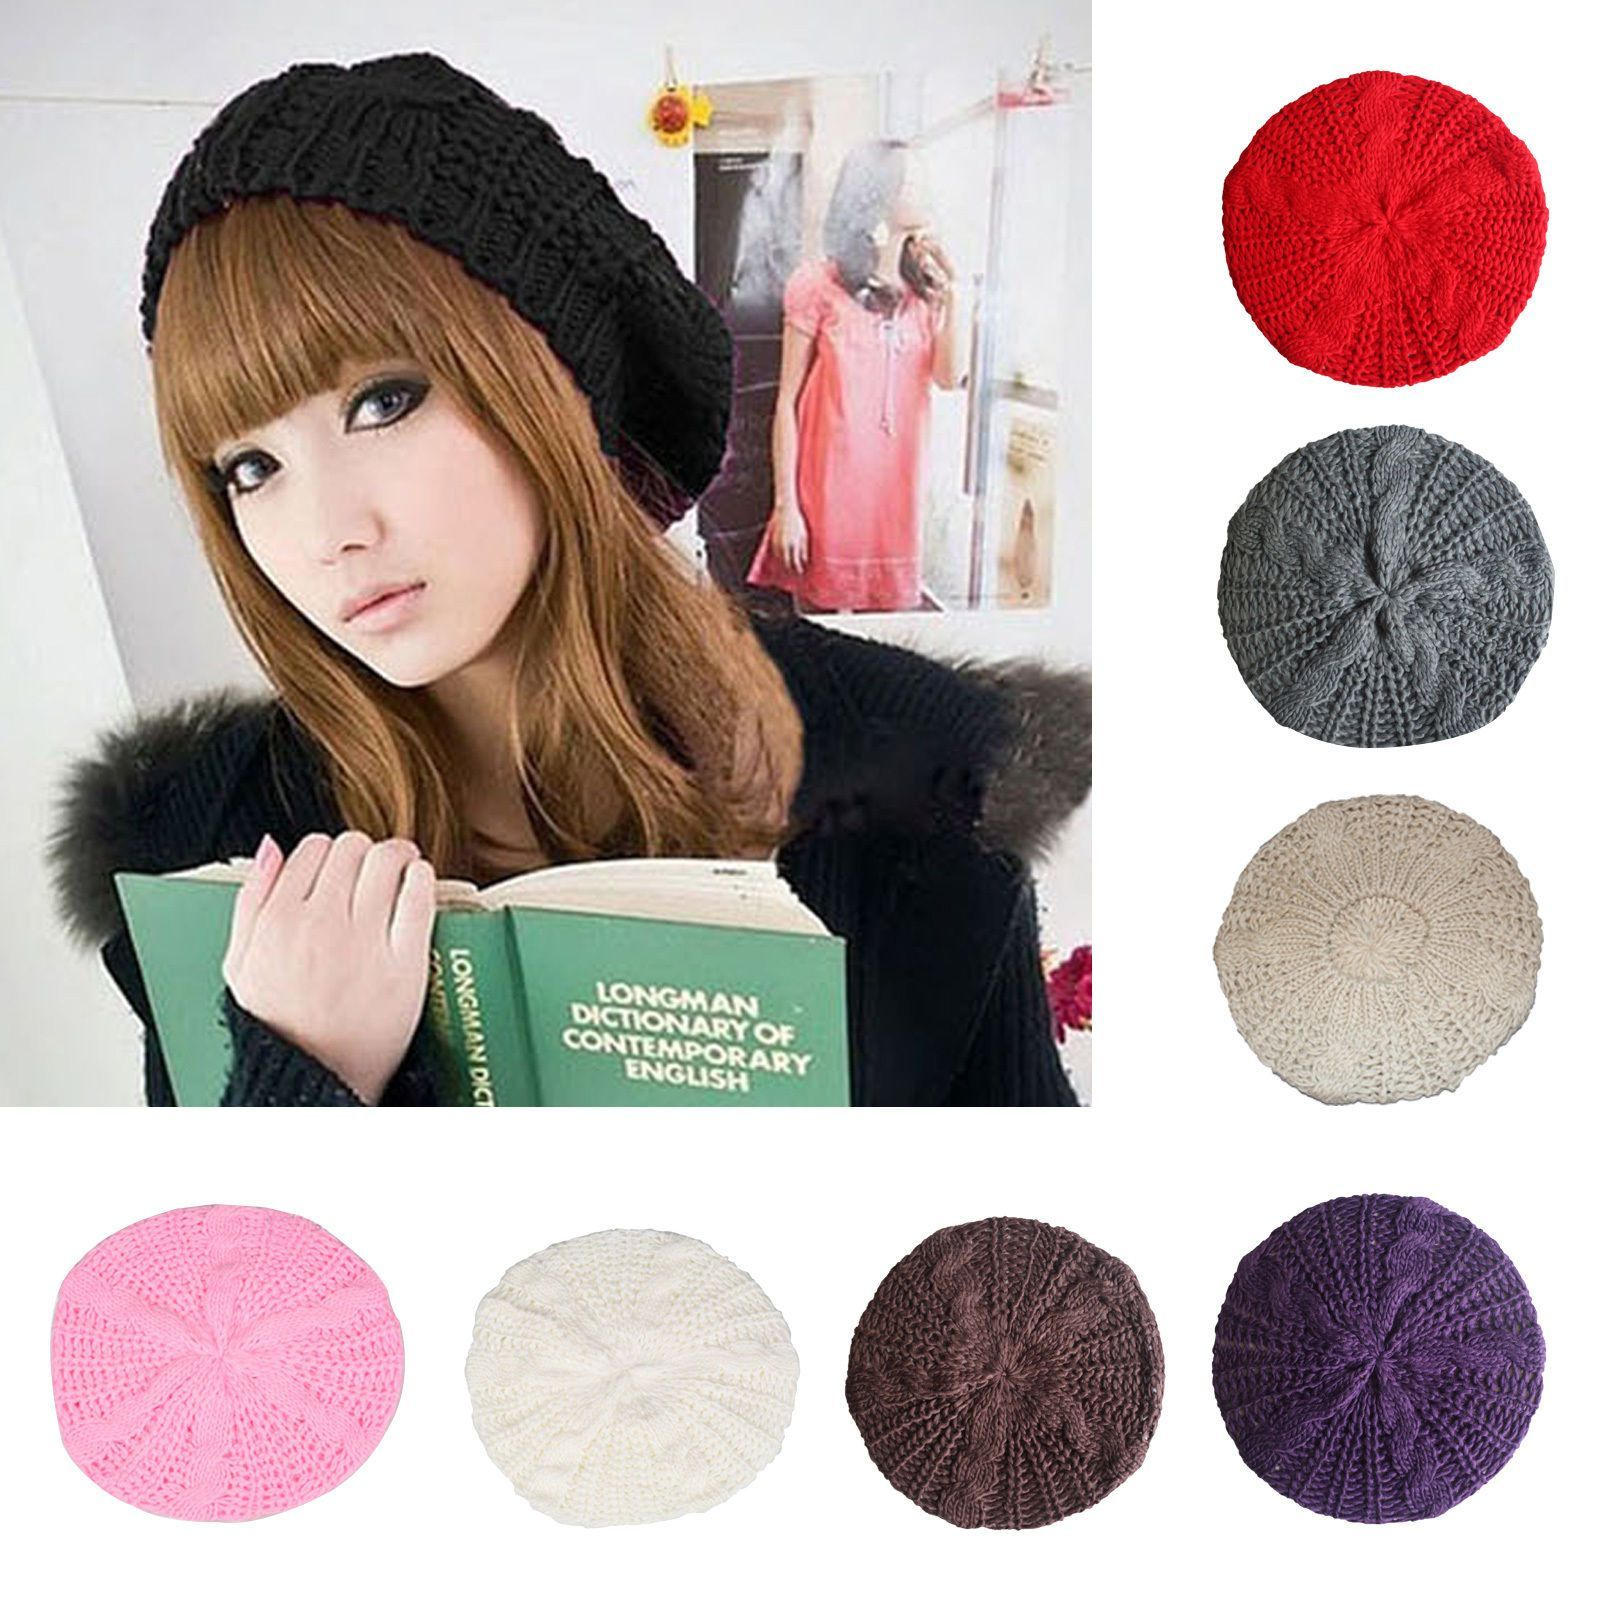 fcdc4b21d5a Fashion Womens Winter Knit Crochet Ski Hat Braided Beret Beanie Cap Autumn  Girl